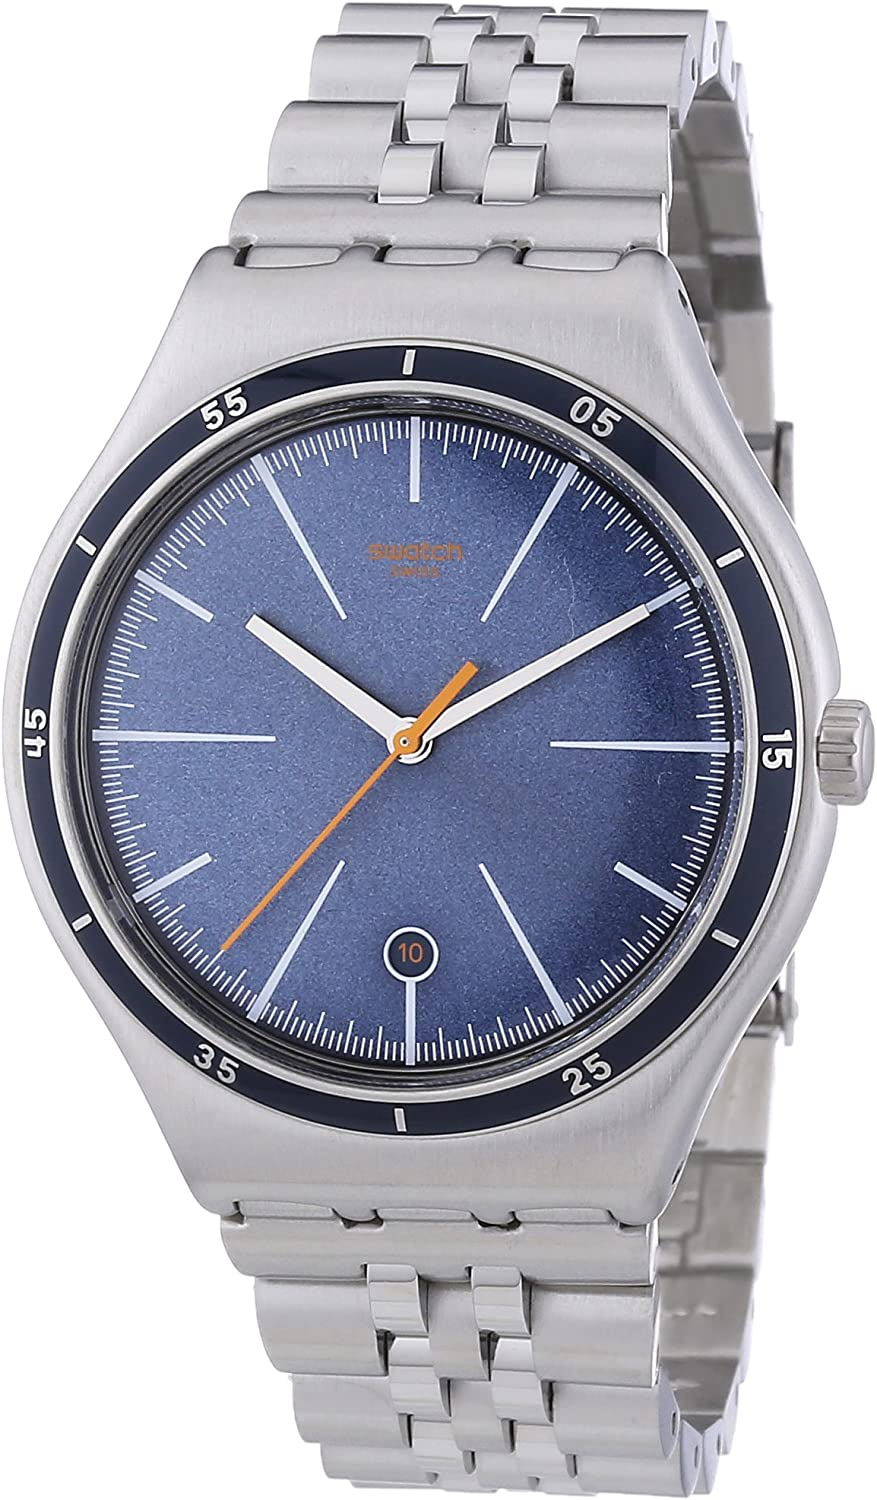 Swatch Irony Big Classic Star Chief - Reloj de Cuarzo para Hombre, con Correa de Acero Inoxidable, Color Plateado